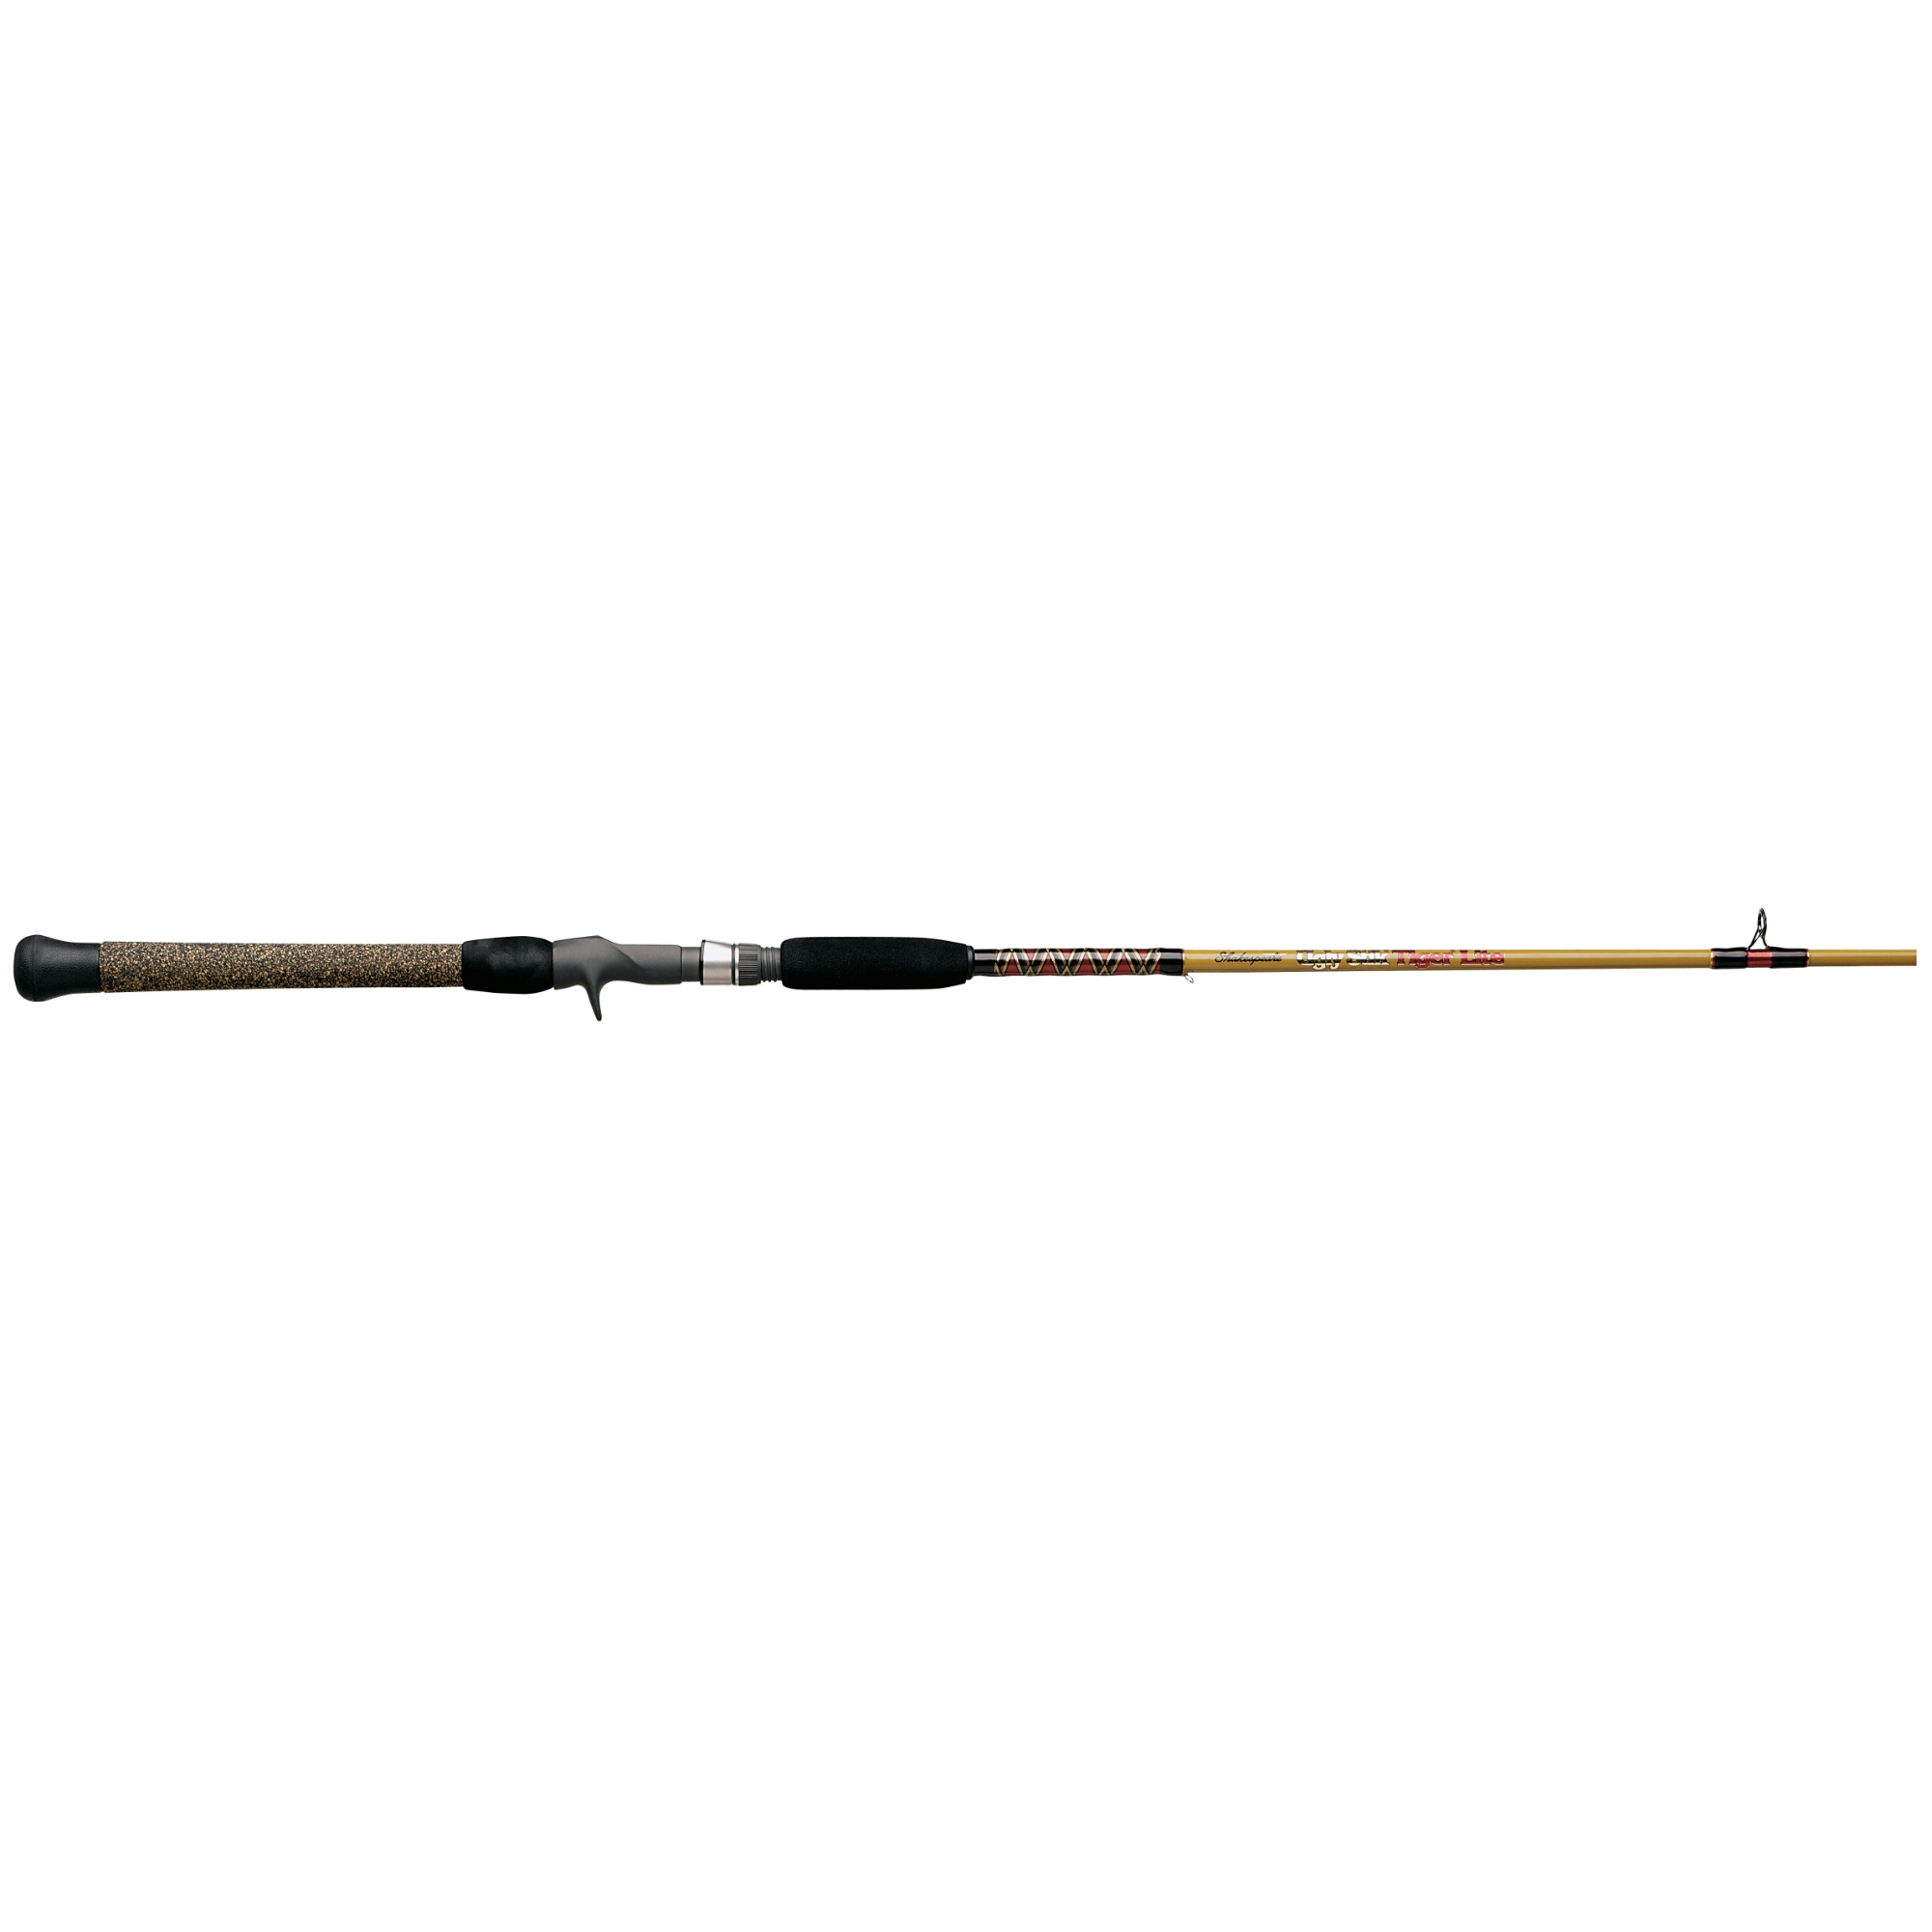 Ugly stik tiger lite casting rod casting rods for Tiger fishing rods